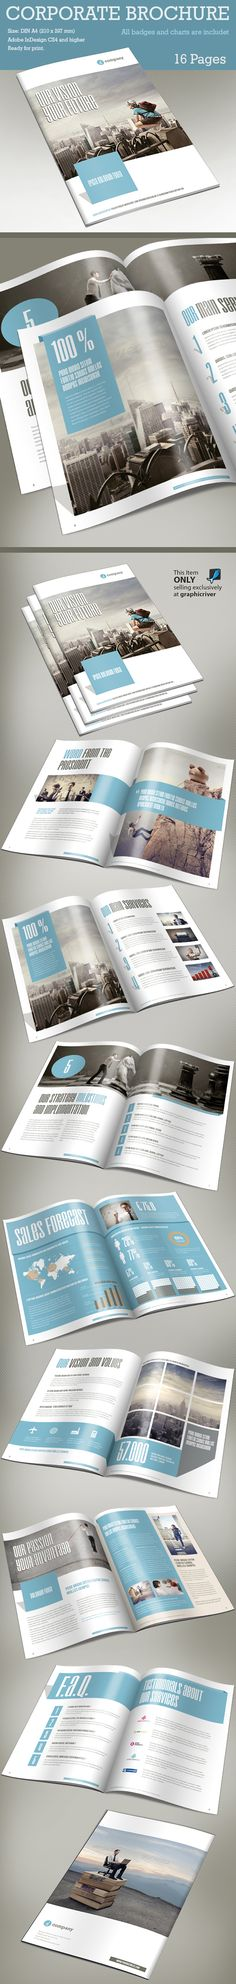 Corporate Brochure  #brochuredesign #corporatebrochure #booklets #annualresports #brochuretemplates #catalogdesign